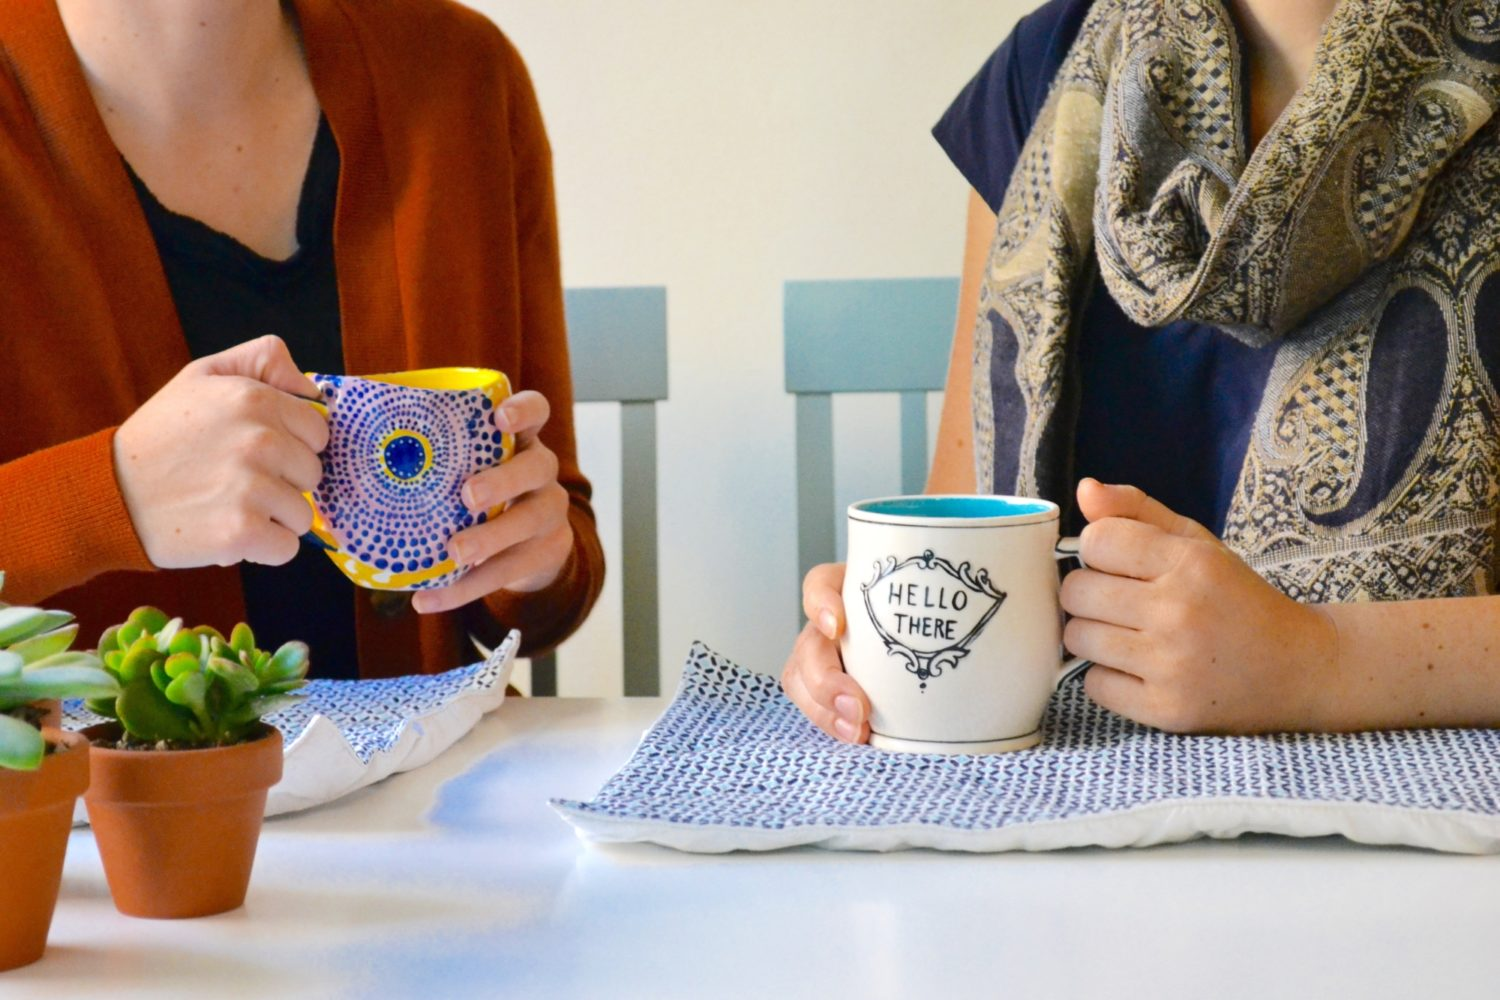 8 People We Would Love to Meet for Coffee (Inspired by Our Podcasts!)